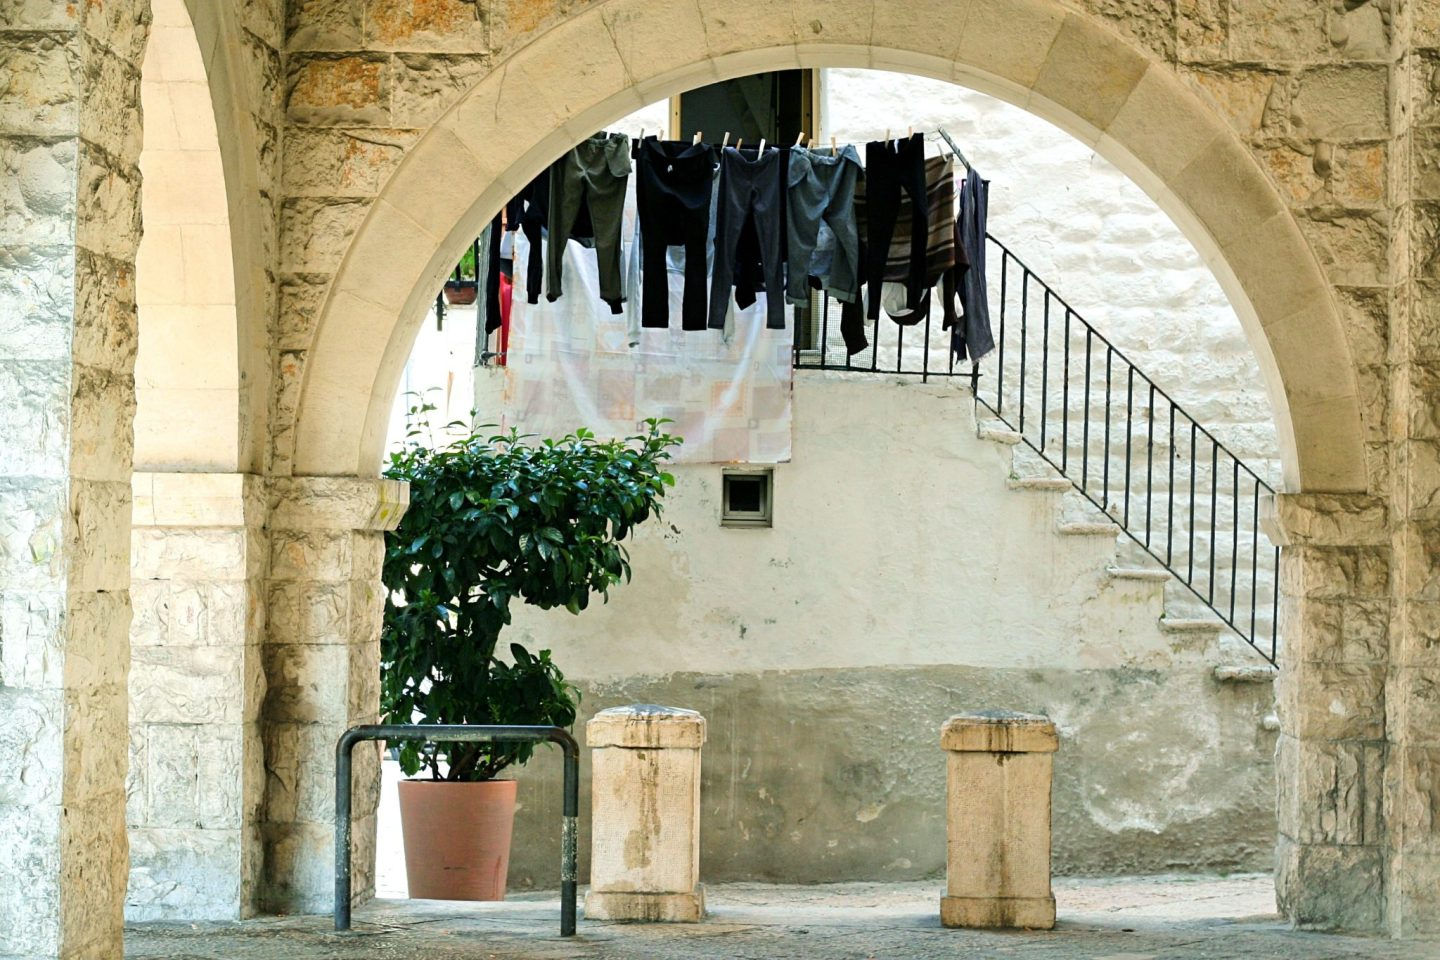 Black laundry hanging on the line in Bari old town, Italy